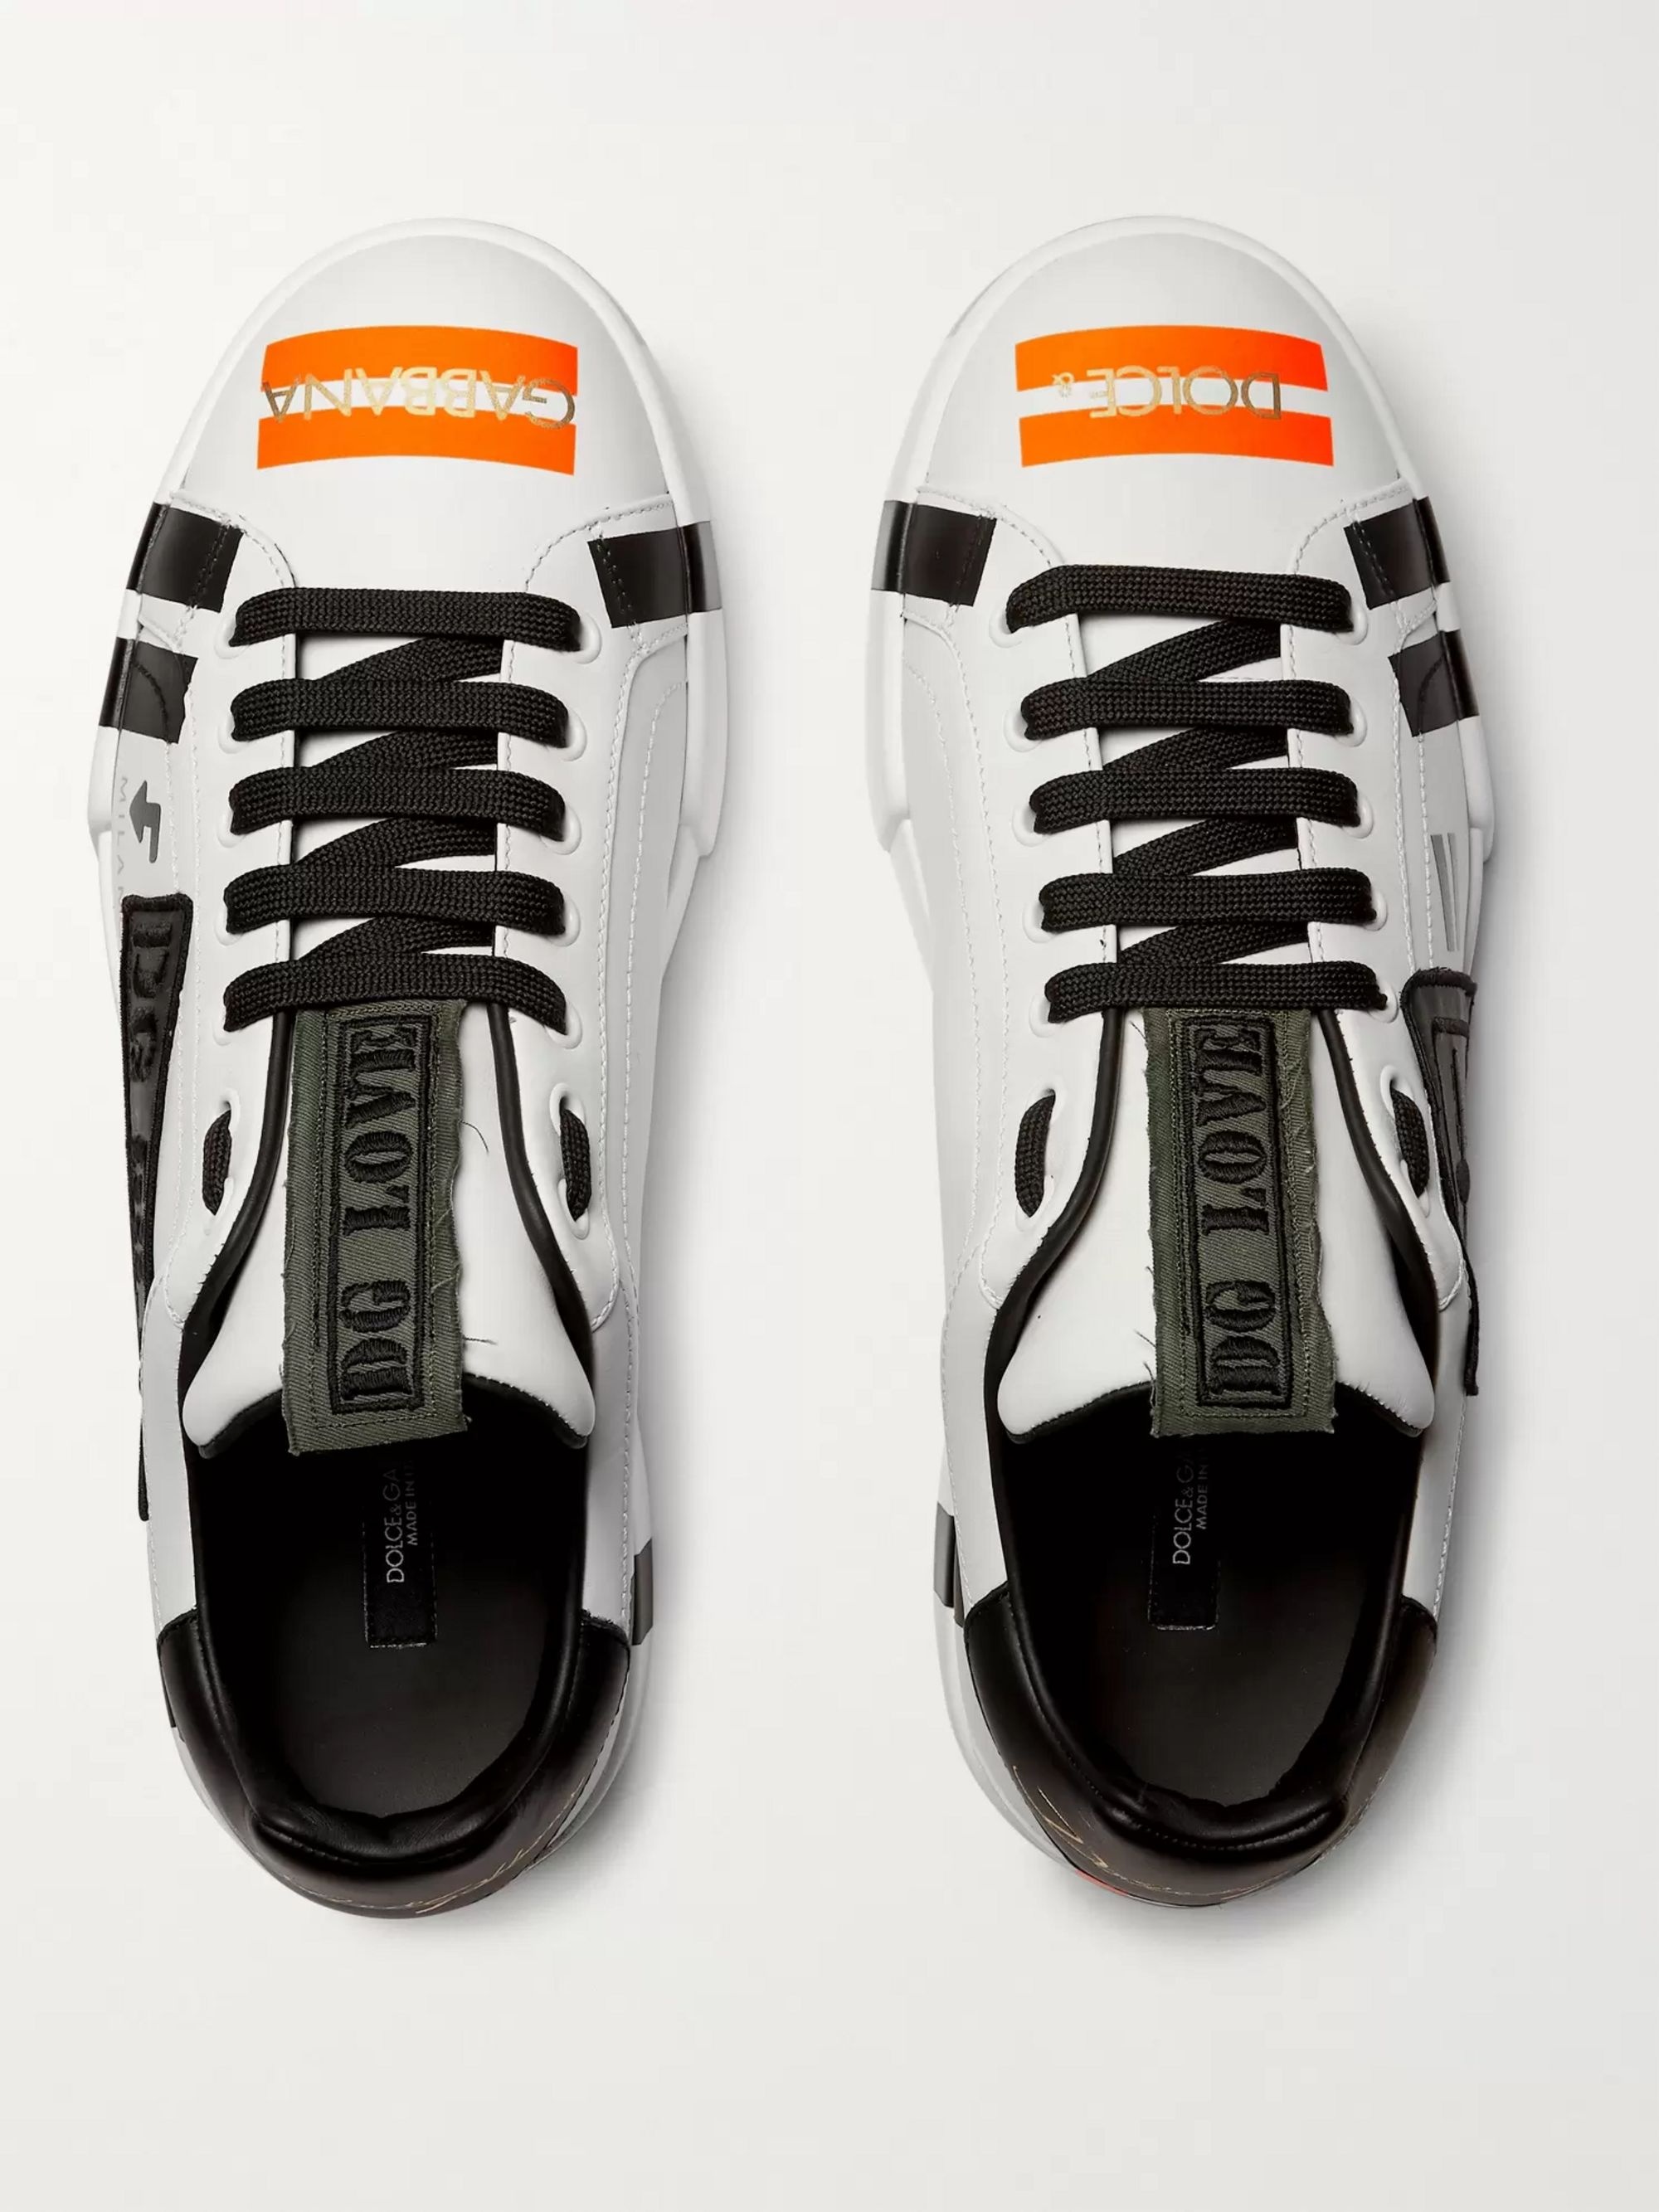 Dolce & Gabbana Appliquéd Printed Leather Sneakers